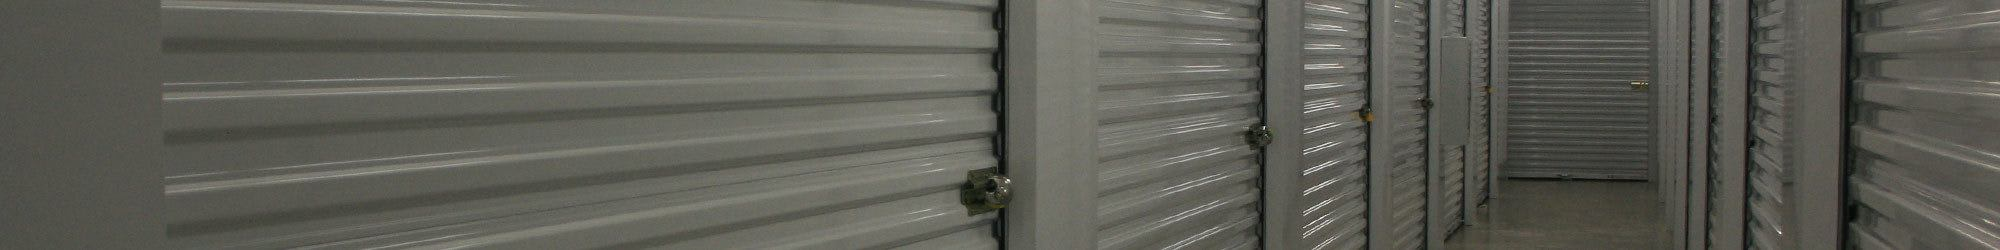 Winter Park FL storage features